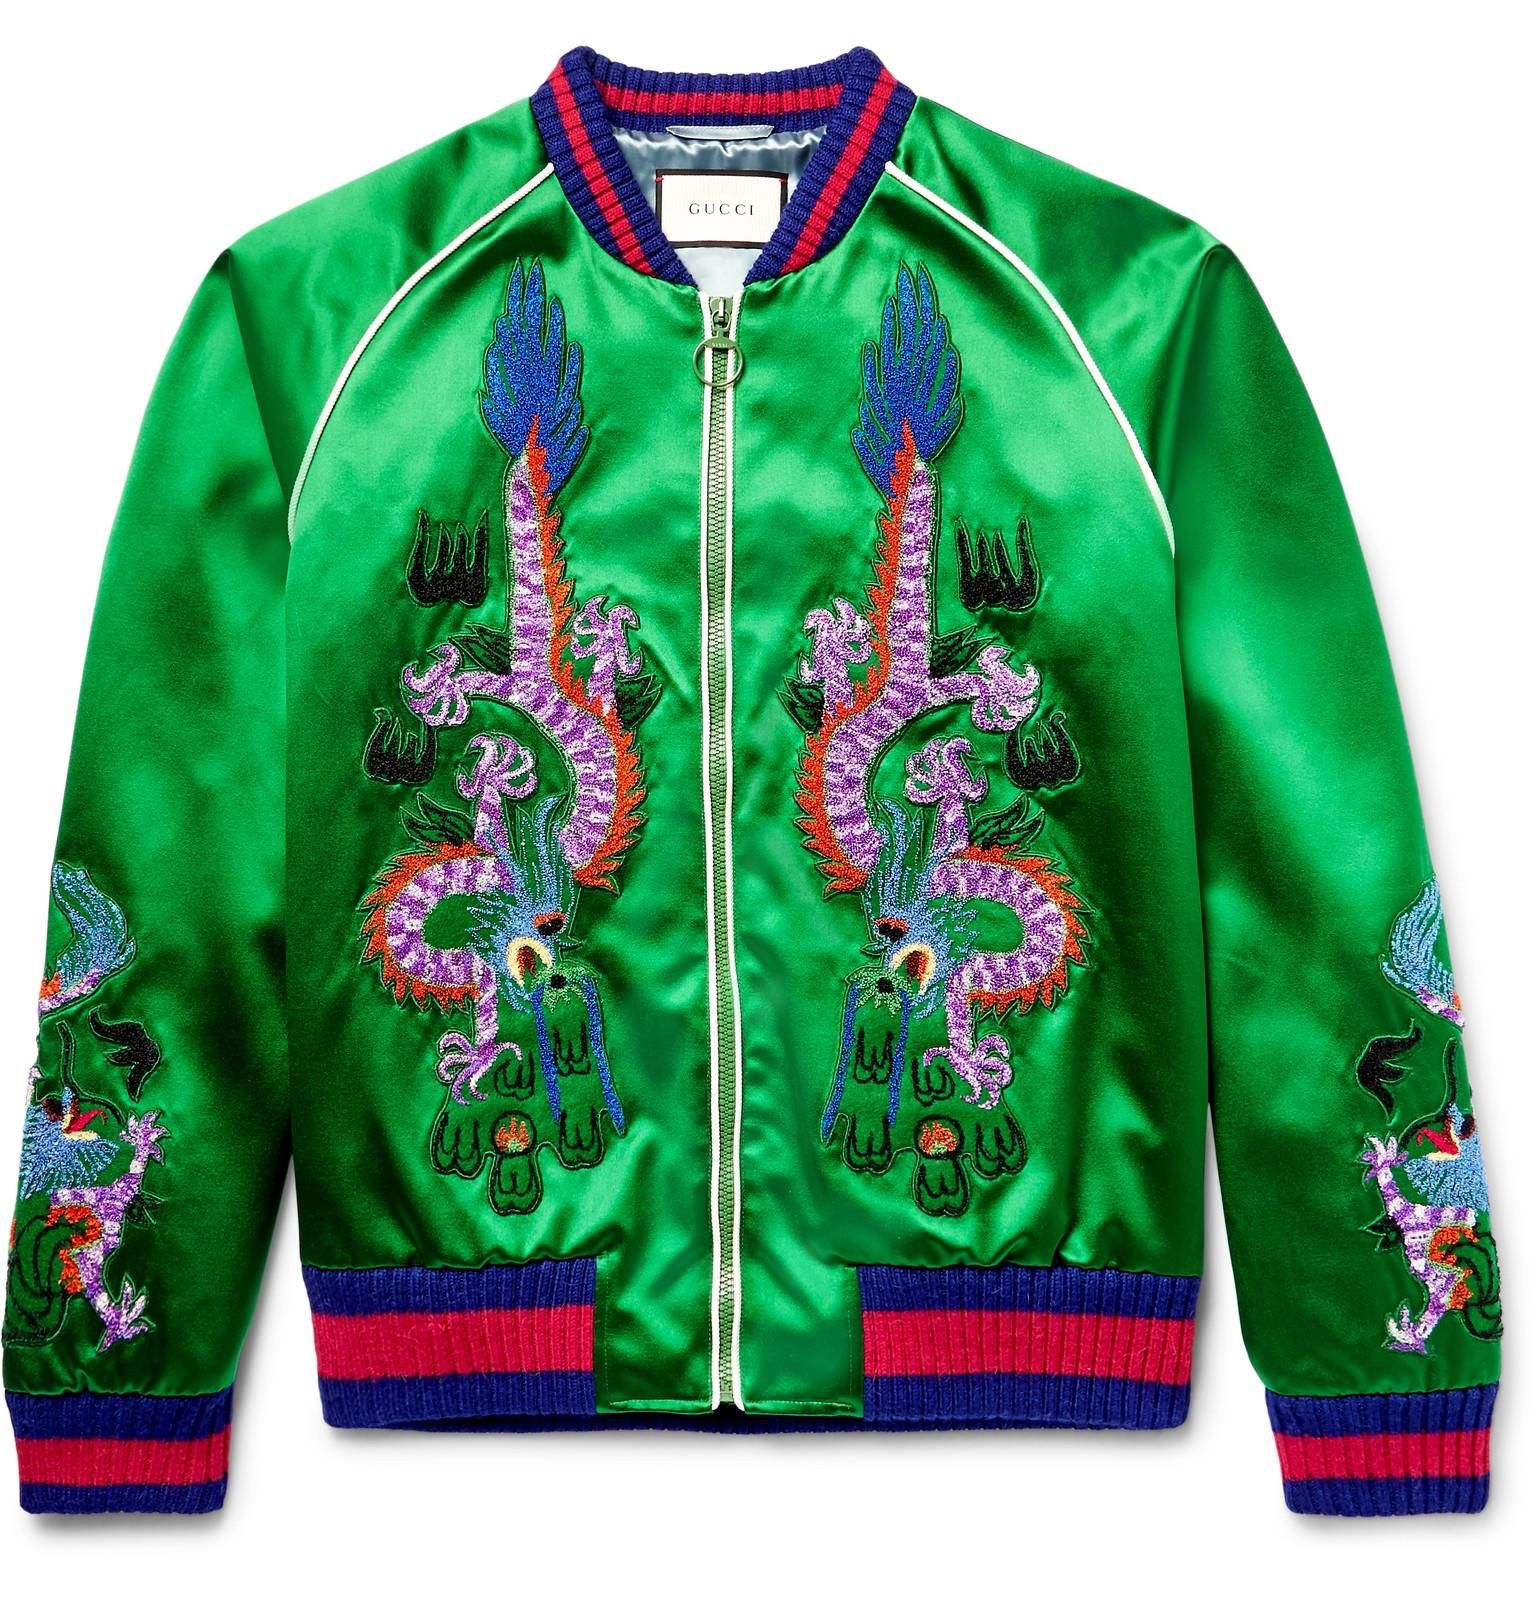 9d315db11 gucci bomber jackets with dragons | Gucci Appliquéd Silk-satin Bomber Jacket  in Green for Men | Lyst